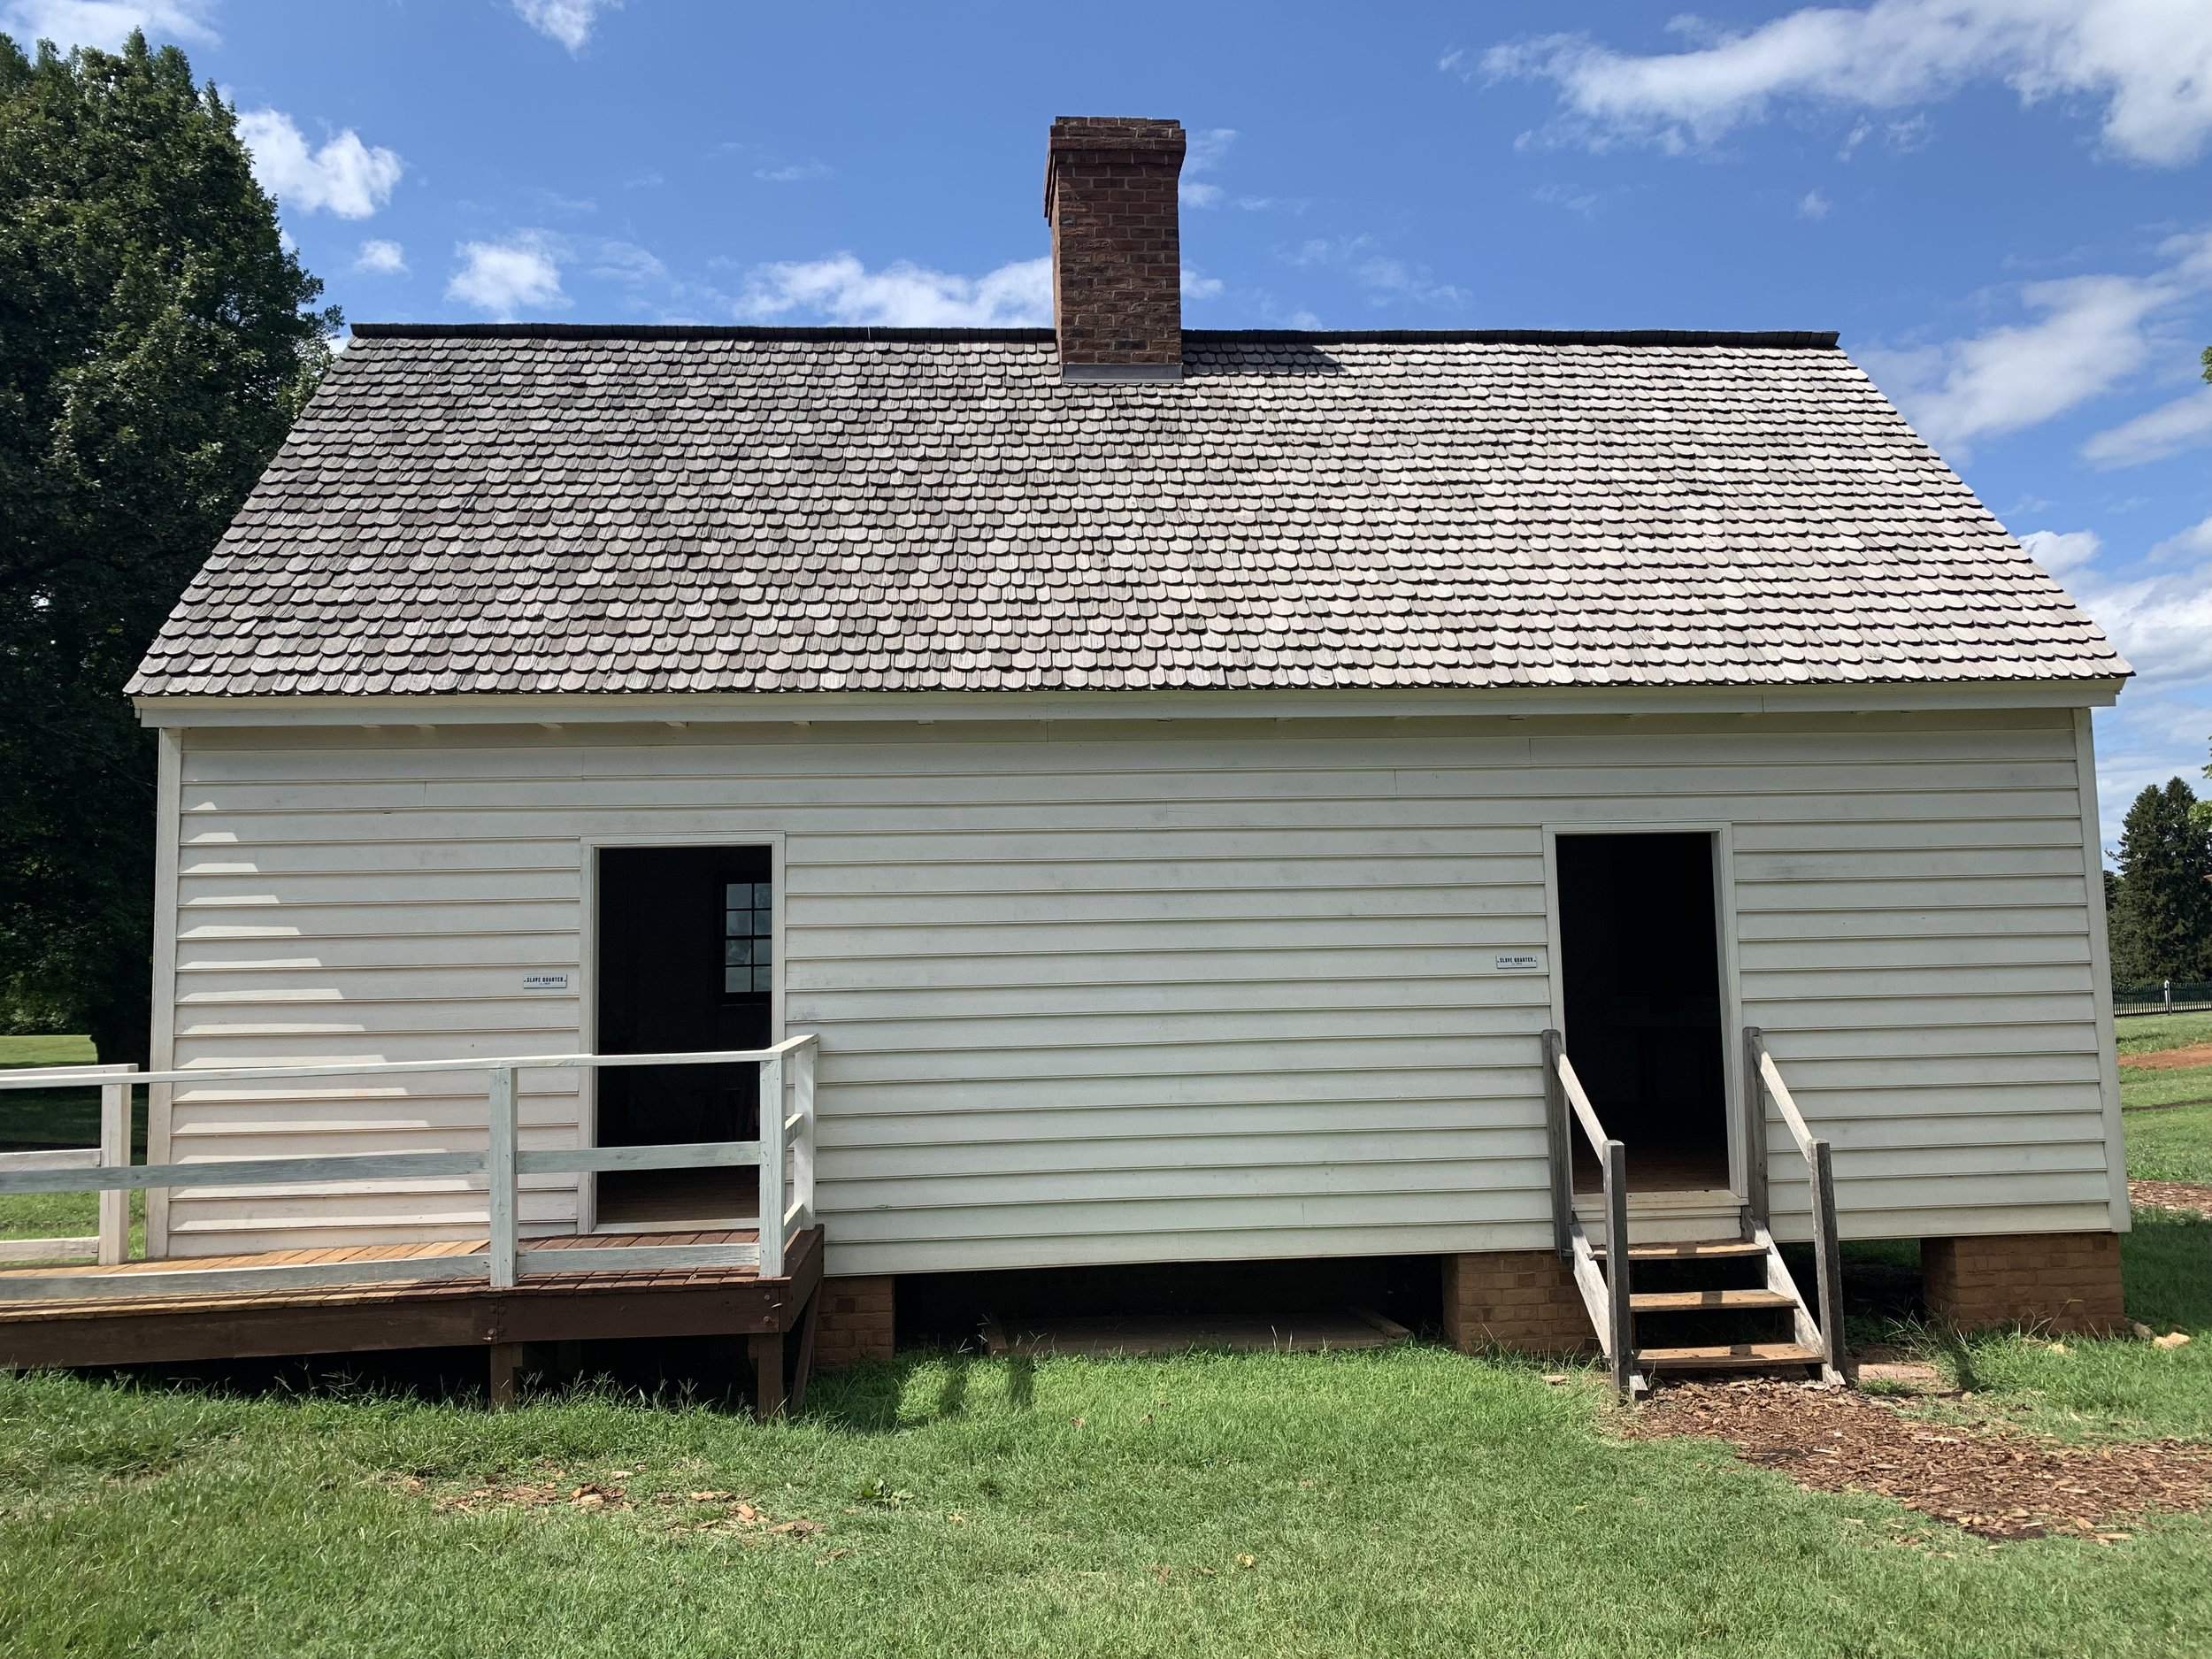 Slave Quarter, Montpelier. Photo by Renée Ater, August 2019.